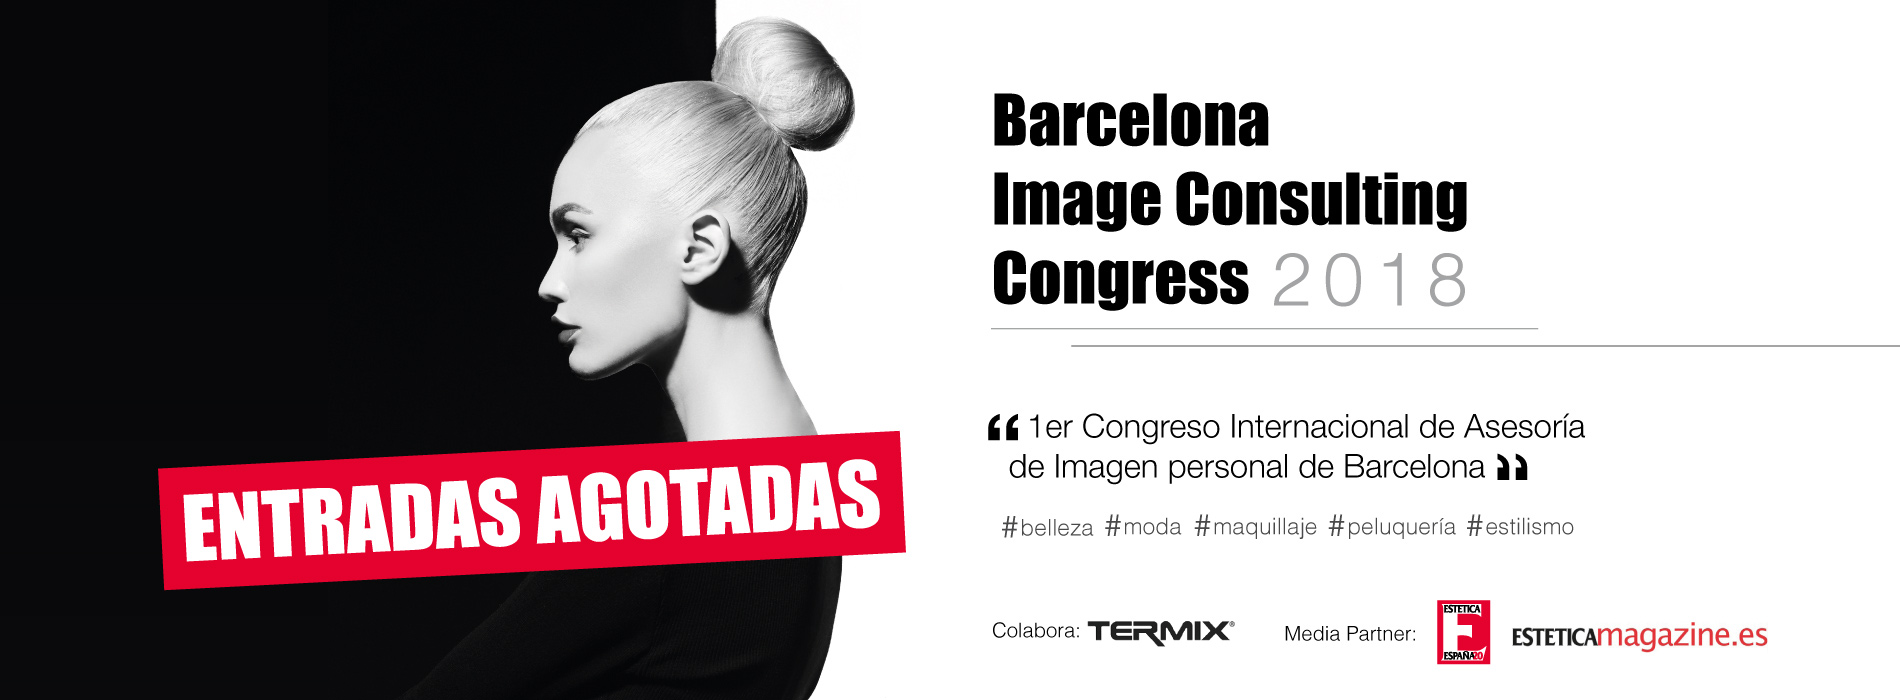 Cosmobeauty Barcelona - Barcelona Image Consulting Congress 2018